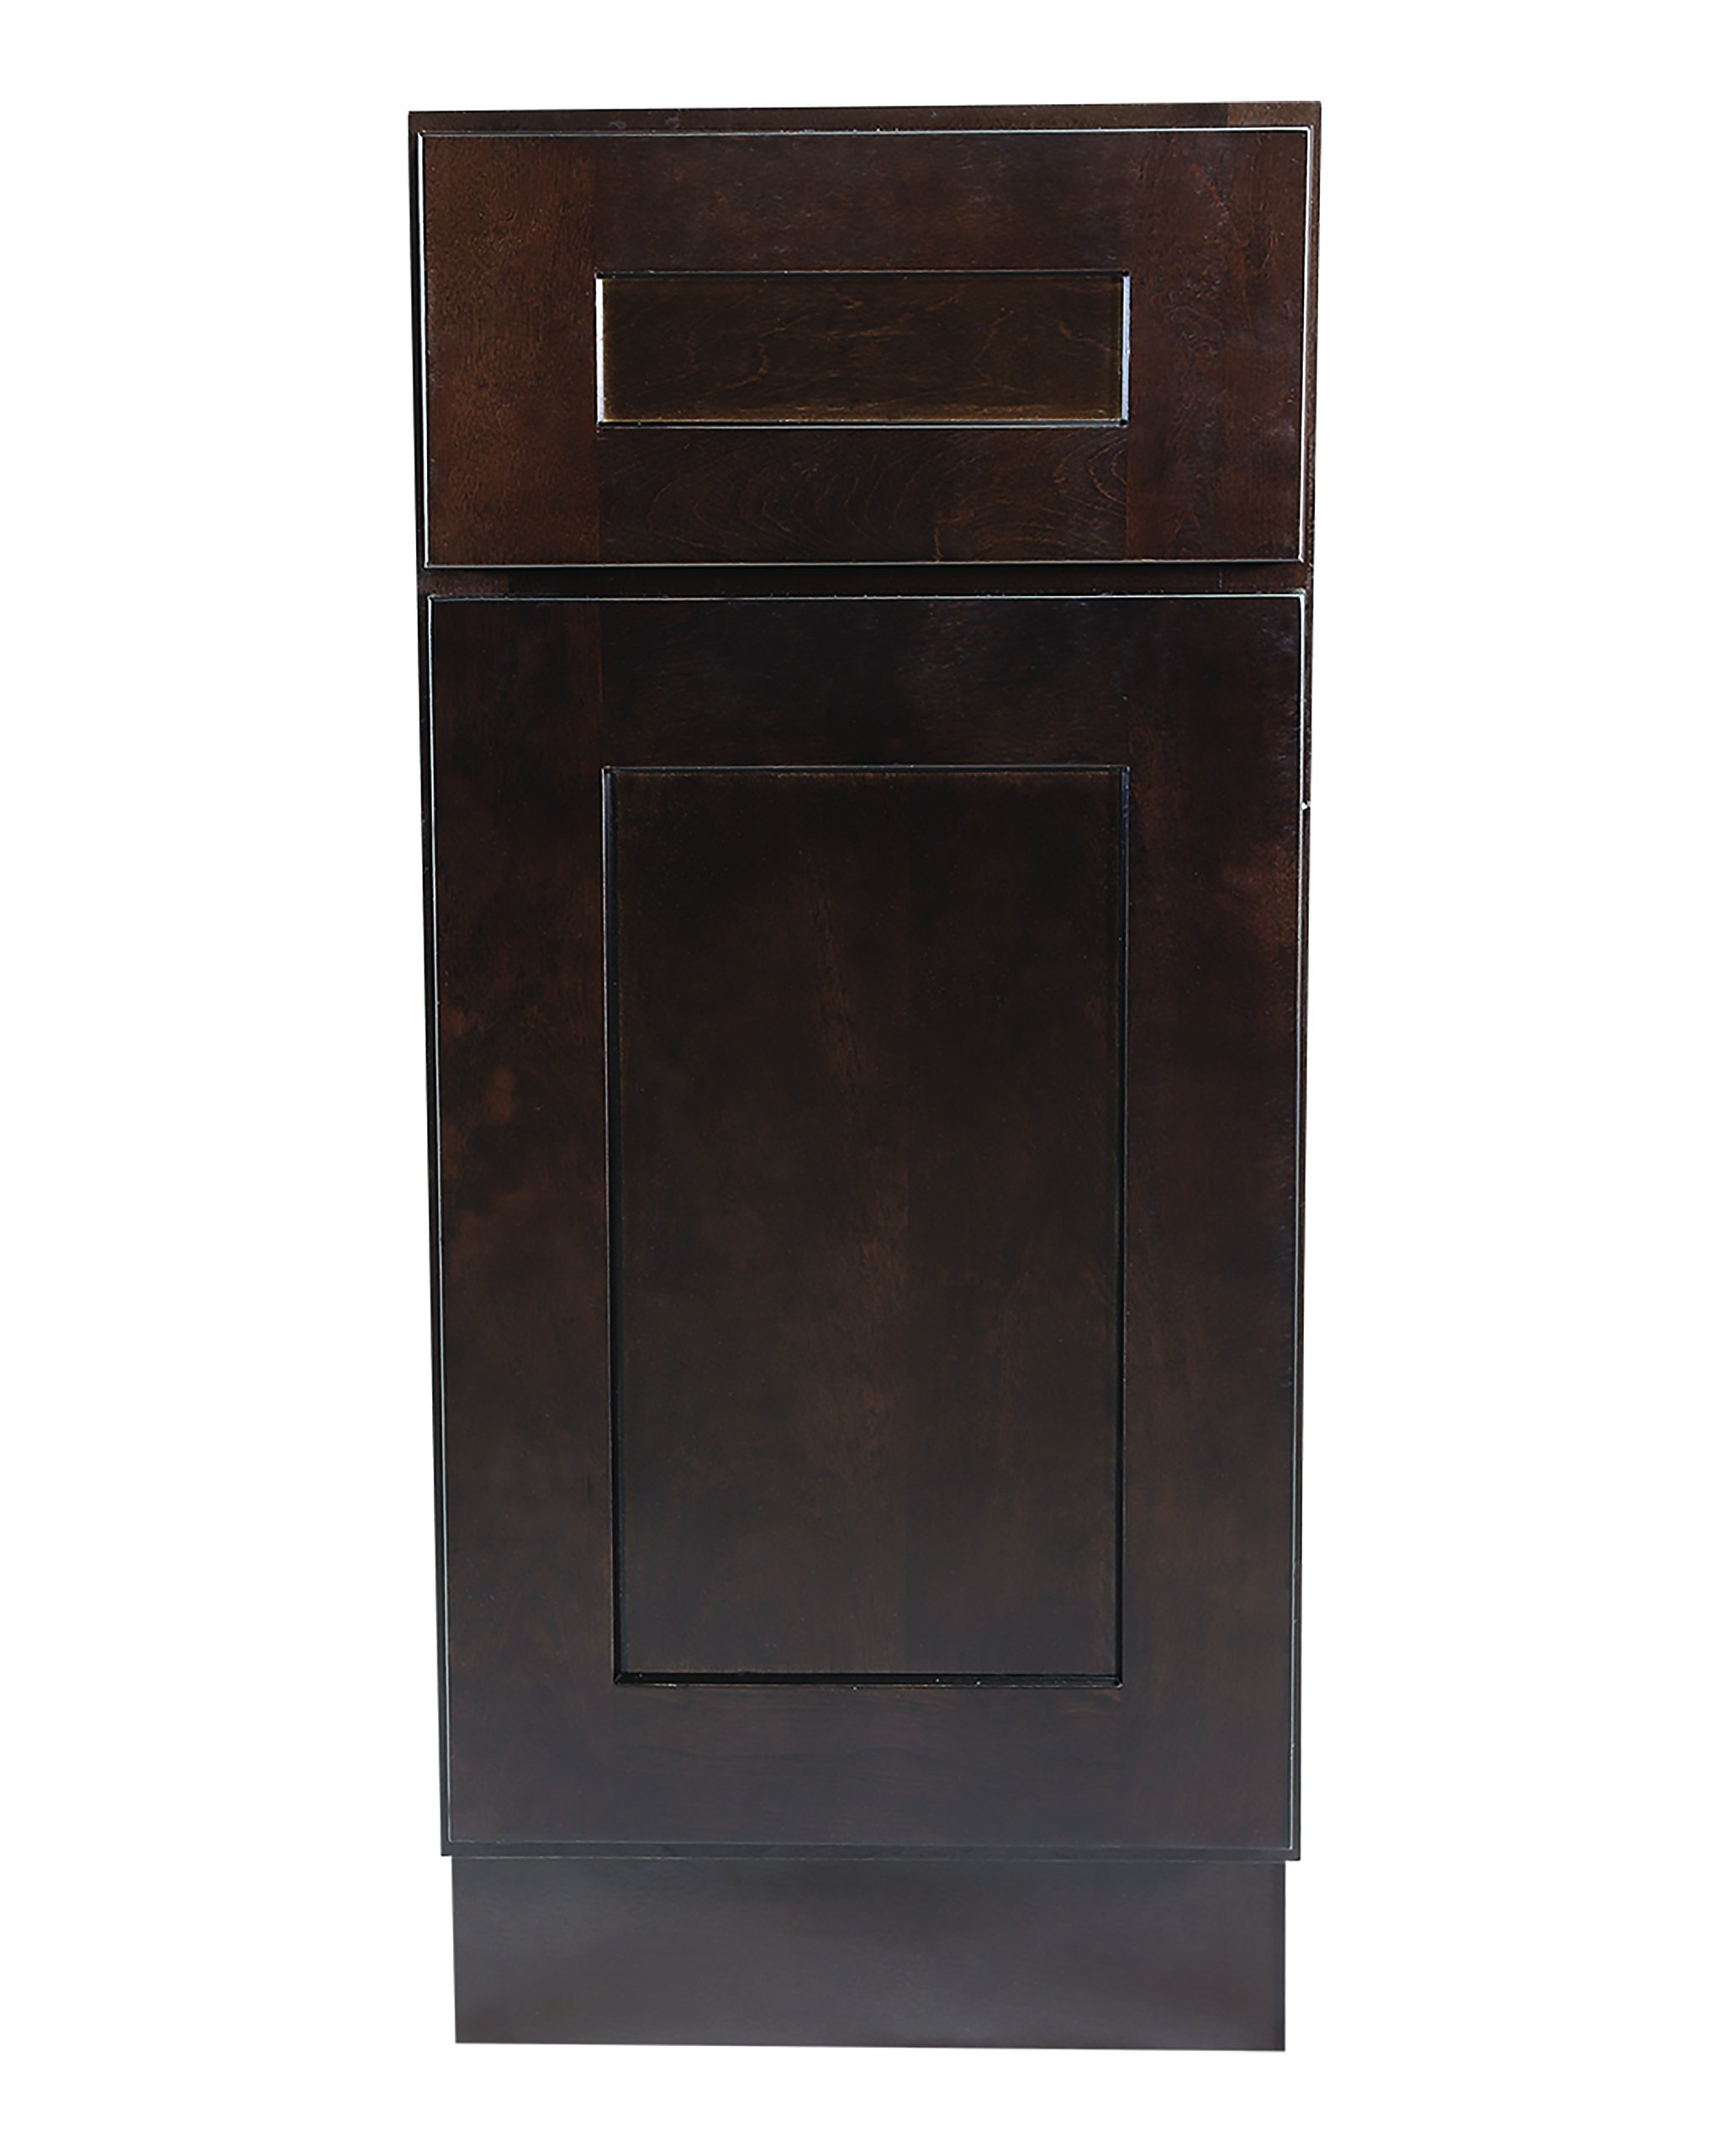 Design House 561944 Brookings 21-Inch Base Cabinet, Espresso Shaker by Design House